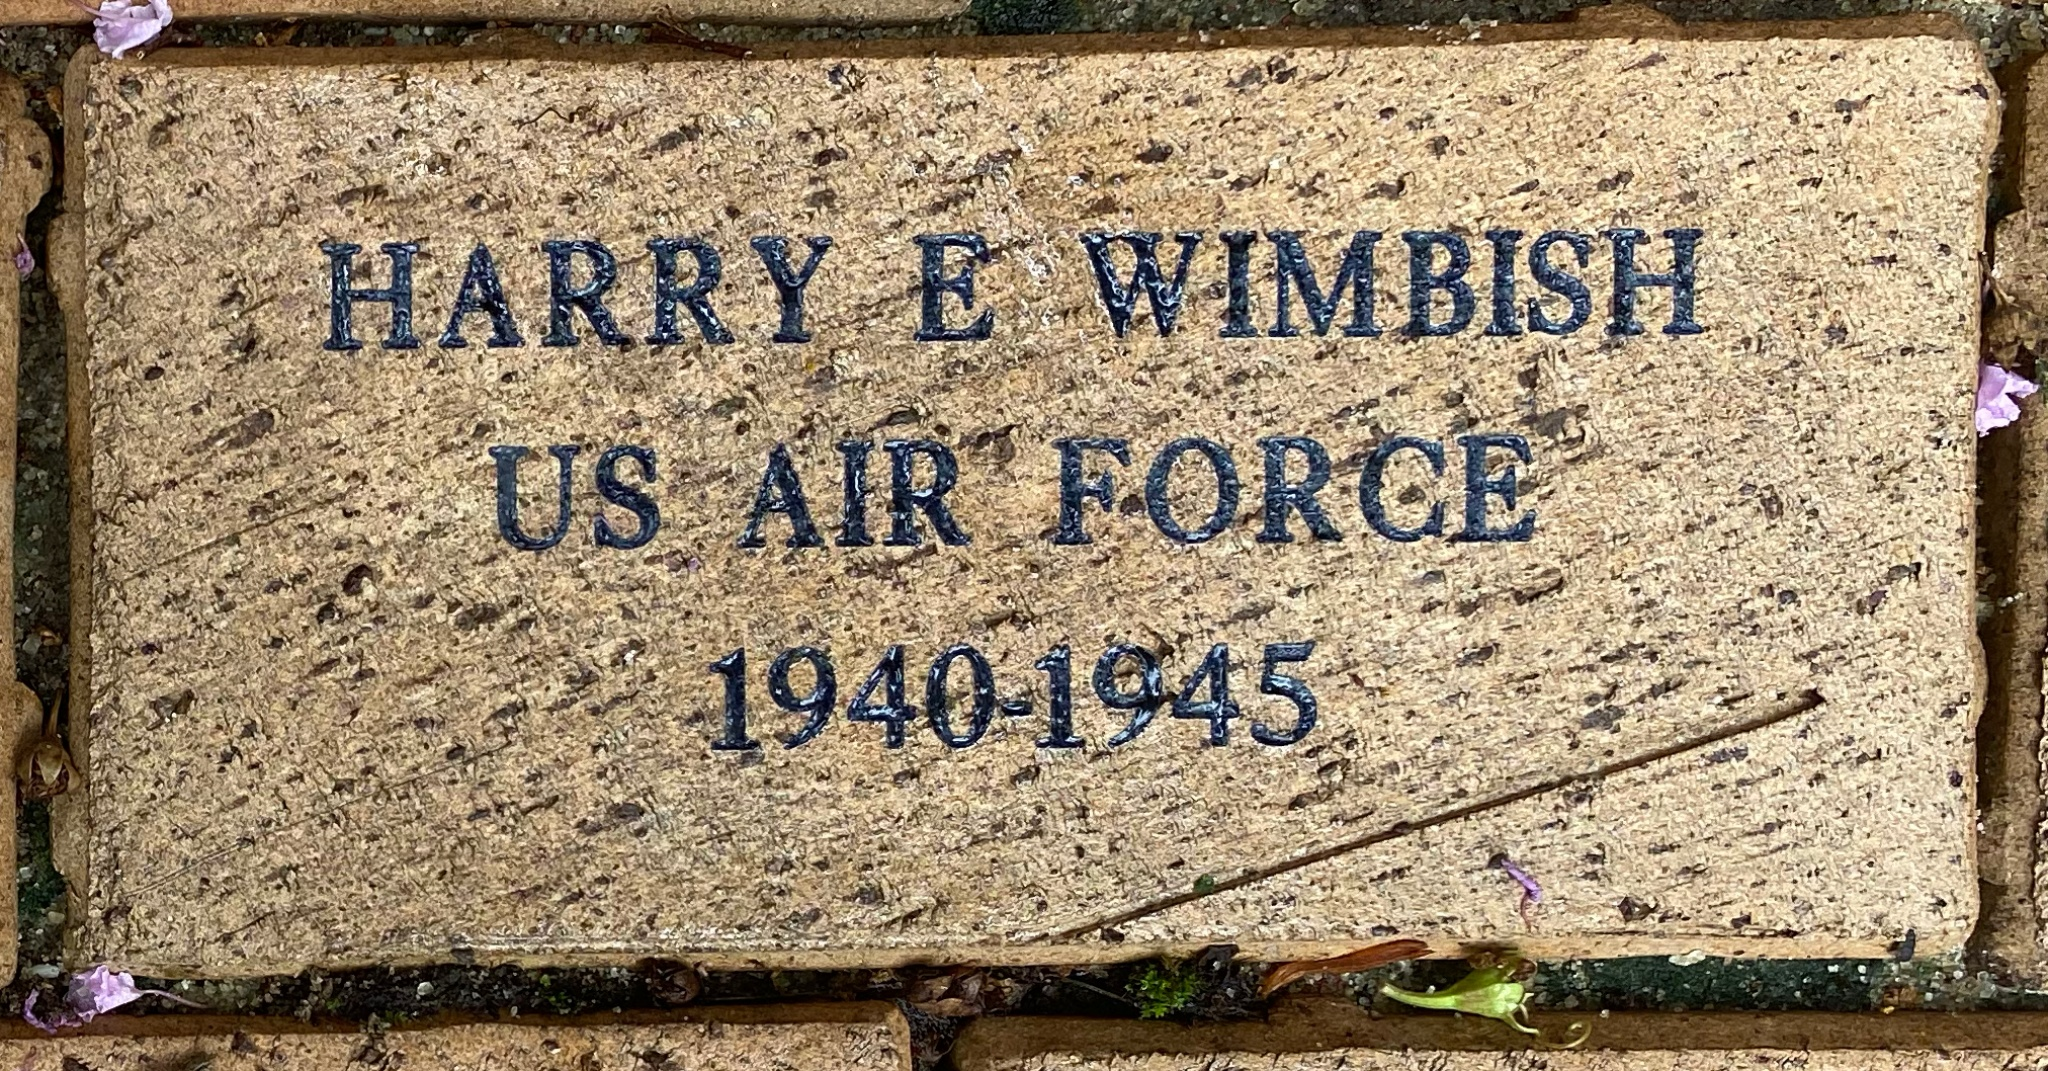 HARRY E WIMBISH US AIR FORCE 1940-1945